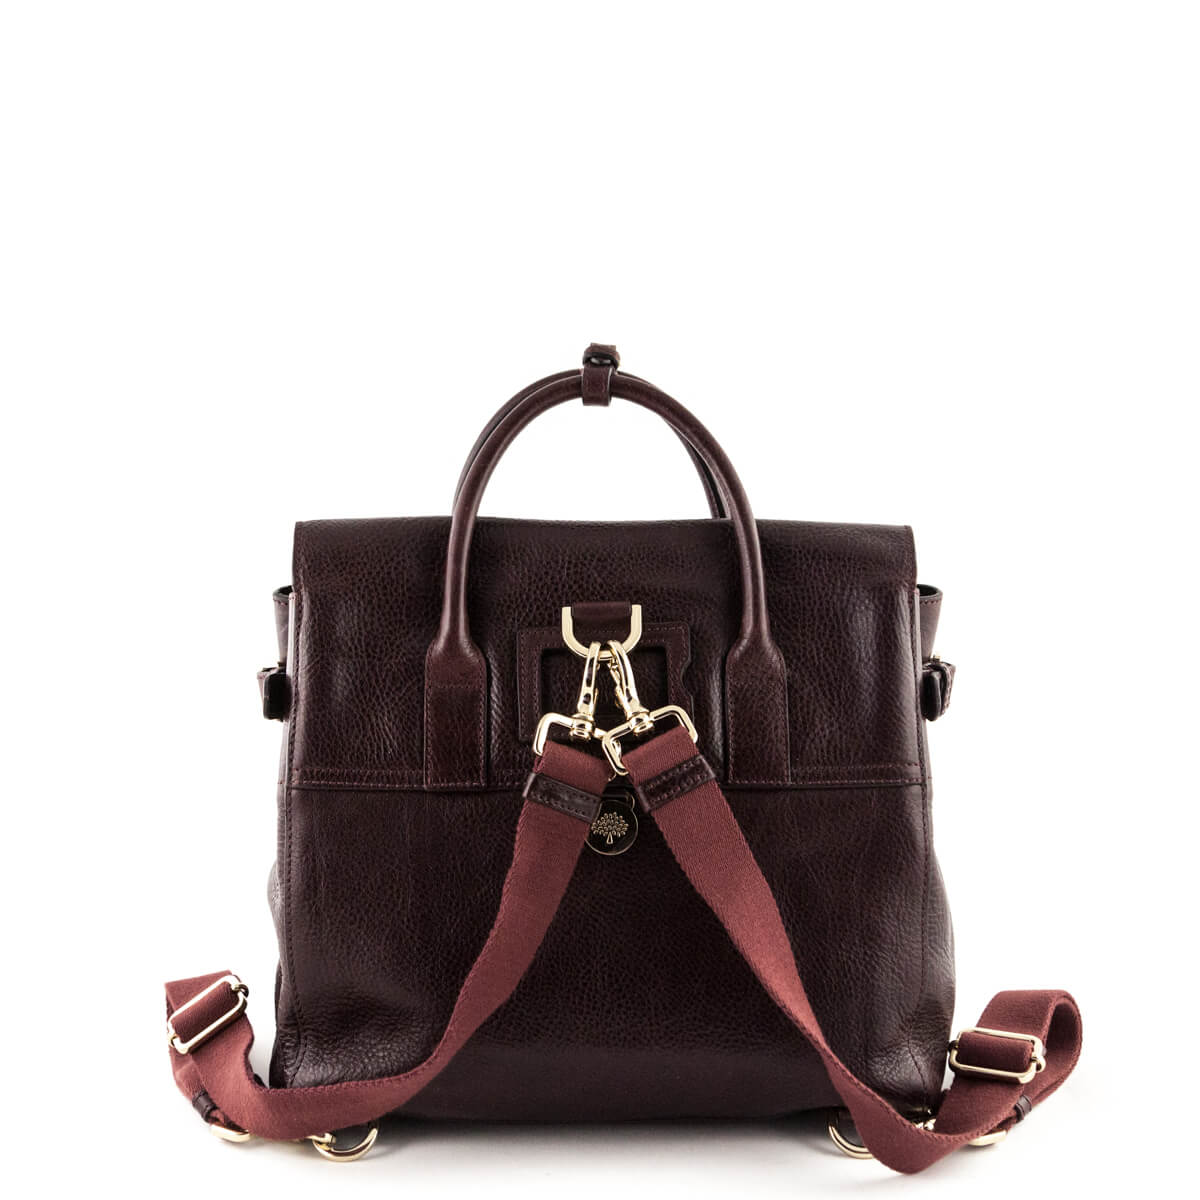 3ea1baff2b2 ... coupon for mulberry oxblood cara delevingne convertible backpack love  that bag preowned authentic designer handbags 3fa8d